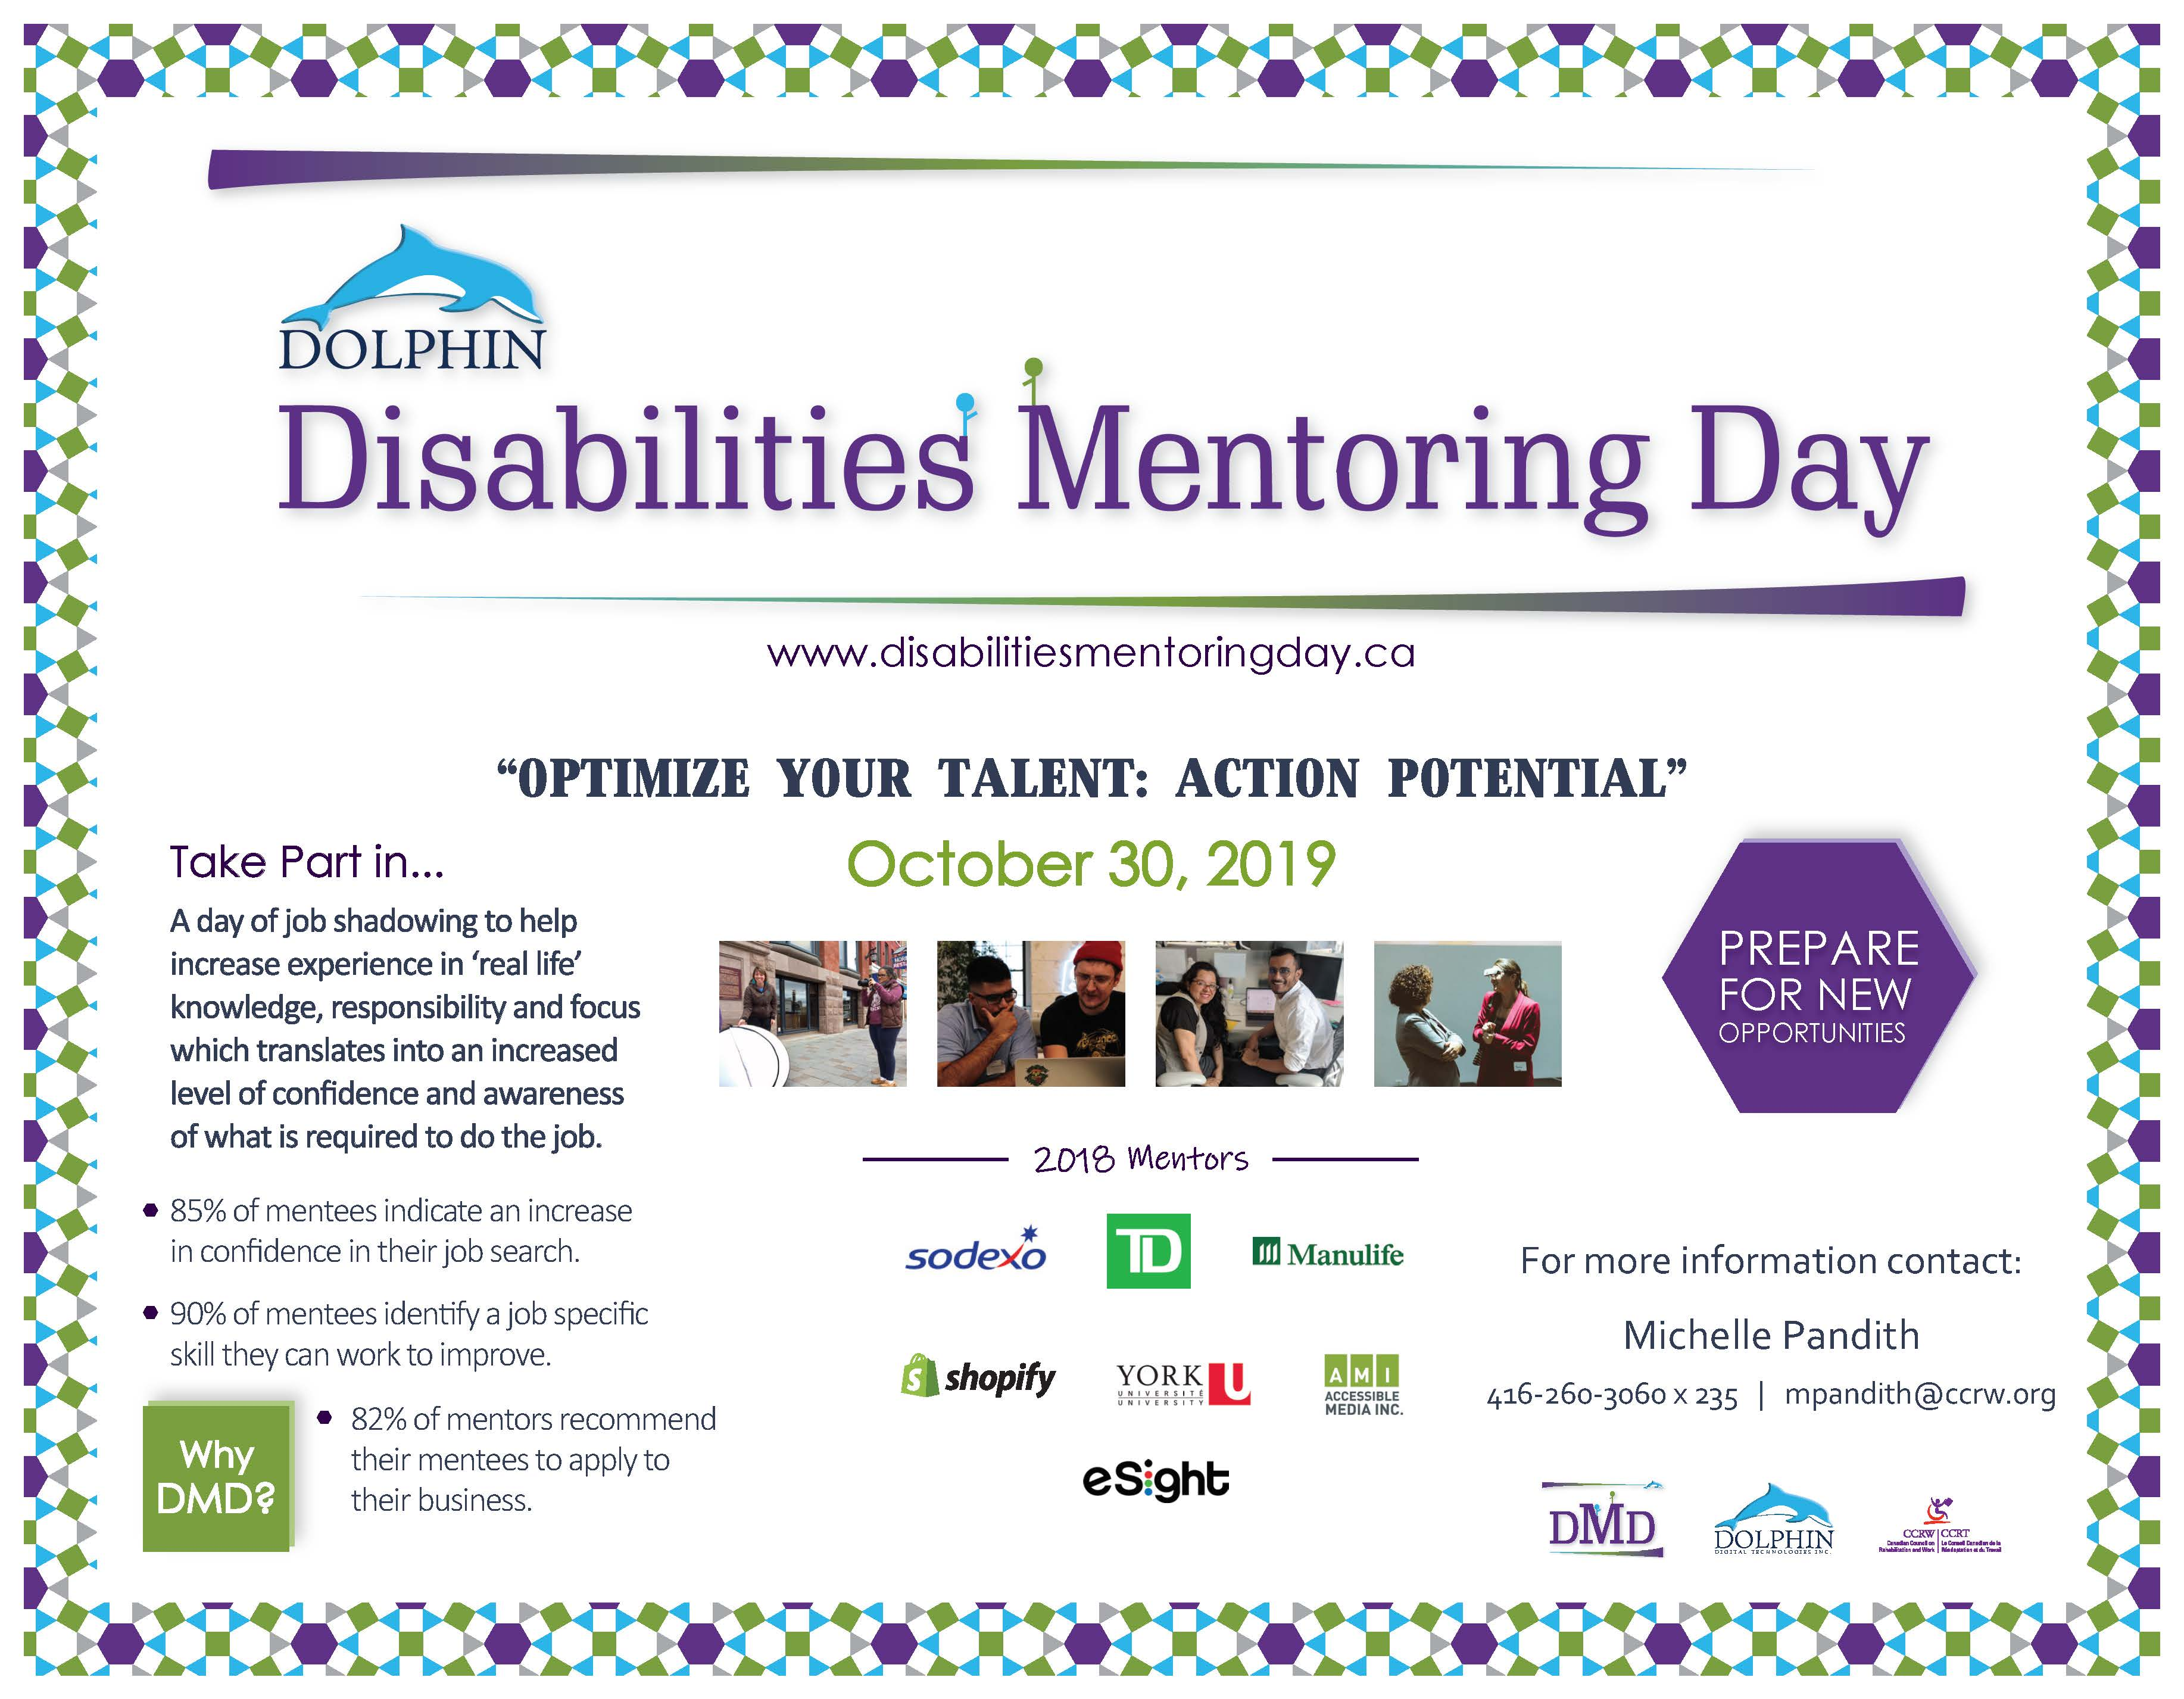 Dolphin Disabilities Mentoring Day Flyer - October 30, 2019